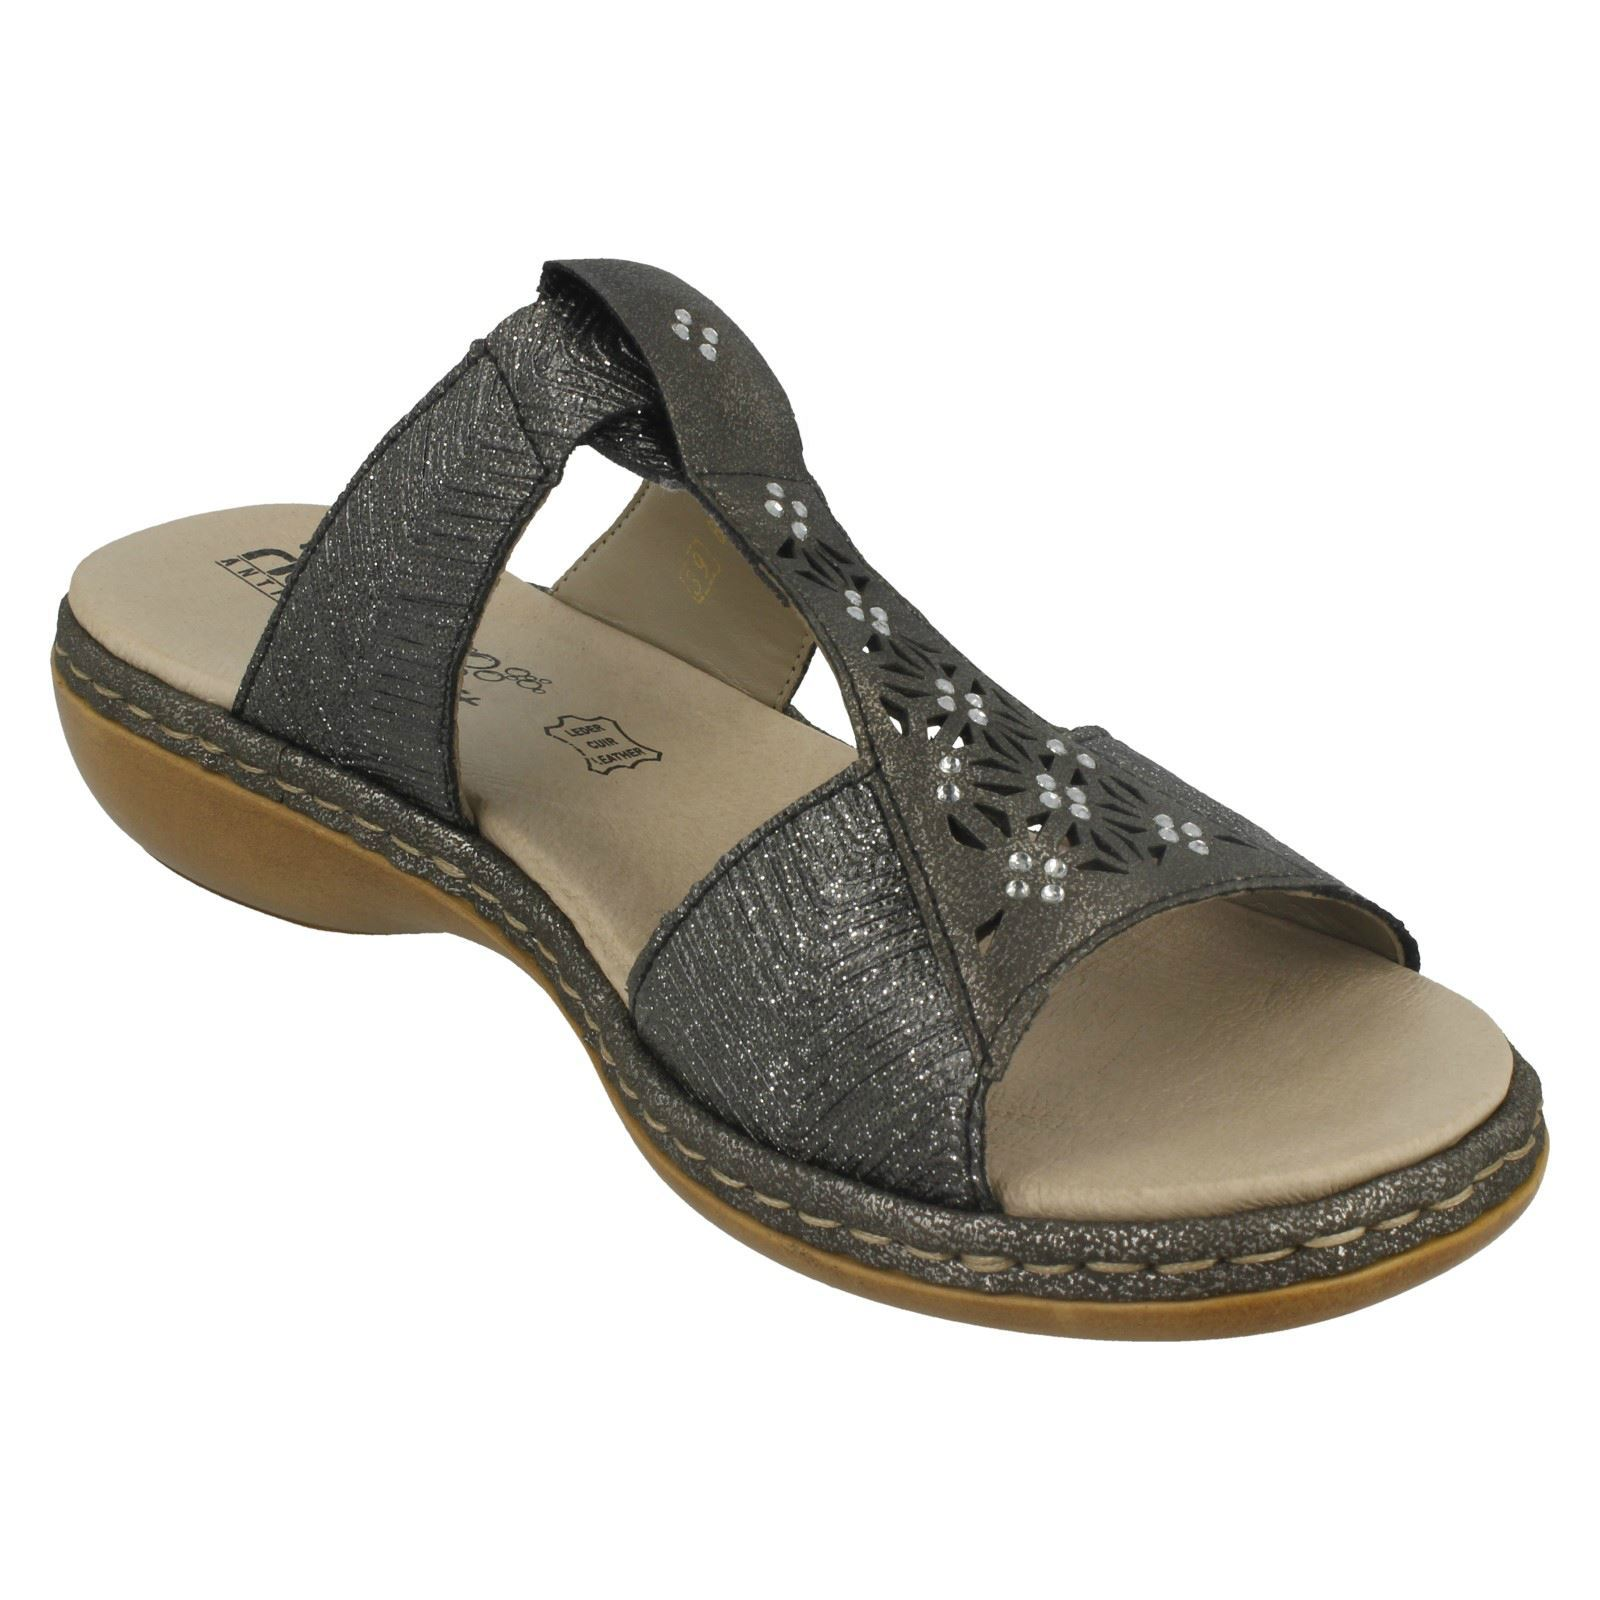 Damas Rieker Slip on Diamante Cortado Sandalias Etiqueta - 65950